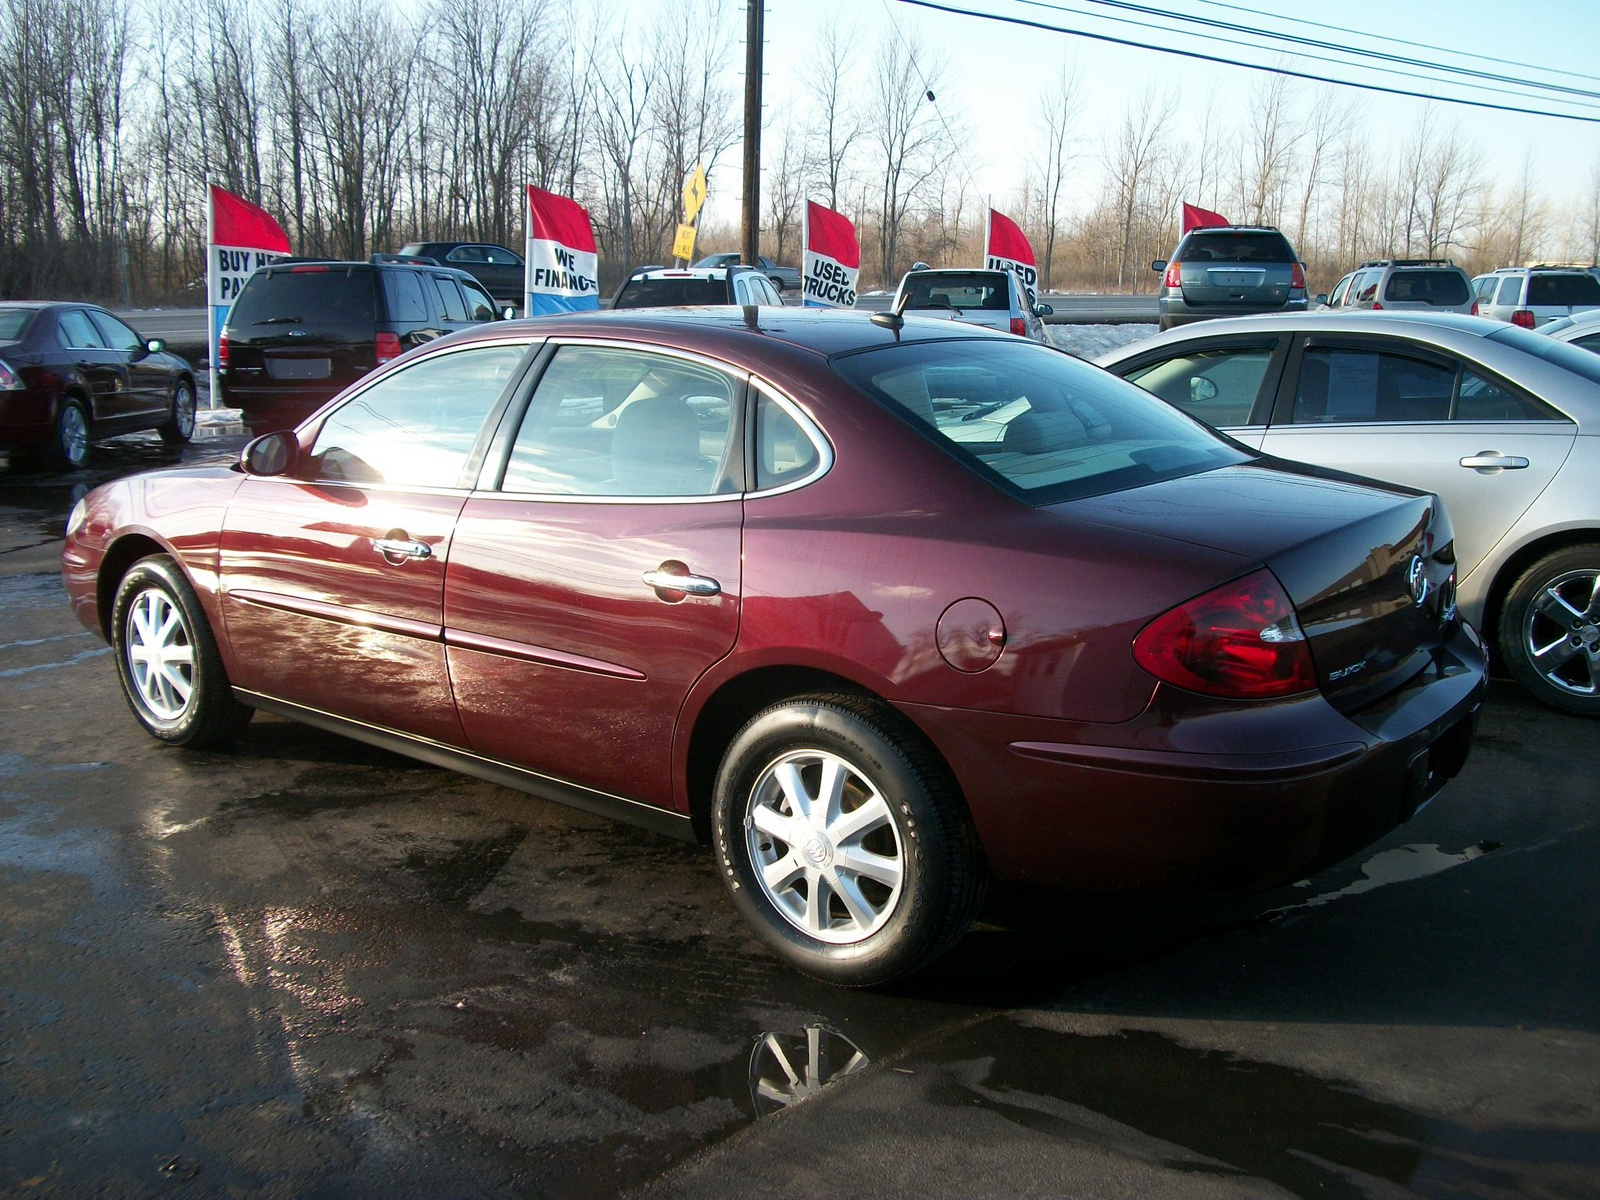 Buick Lacrosse Cx Pic on 2007 Buick Lacrosse Cx Parts